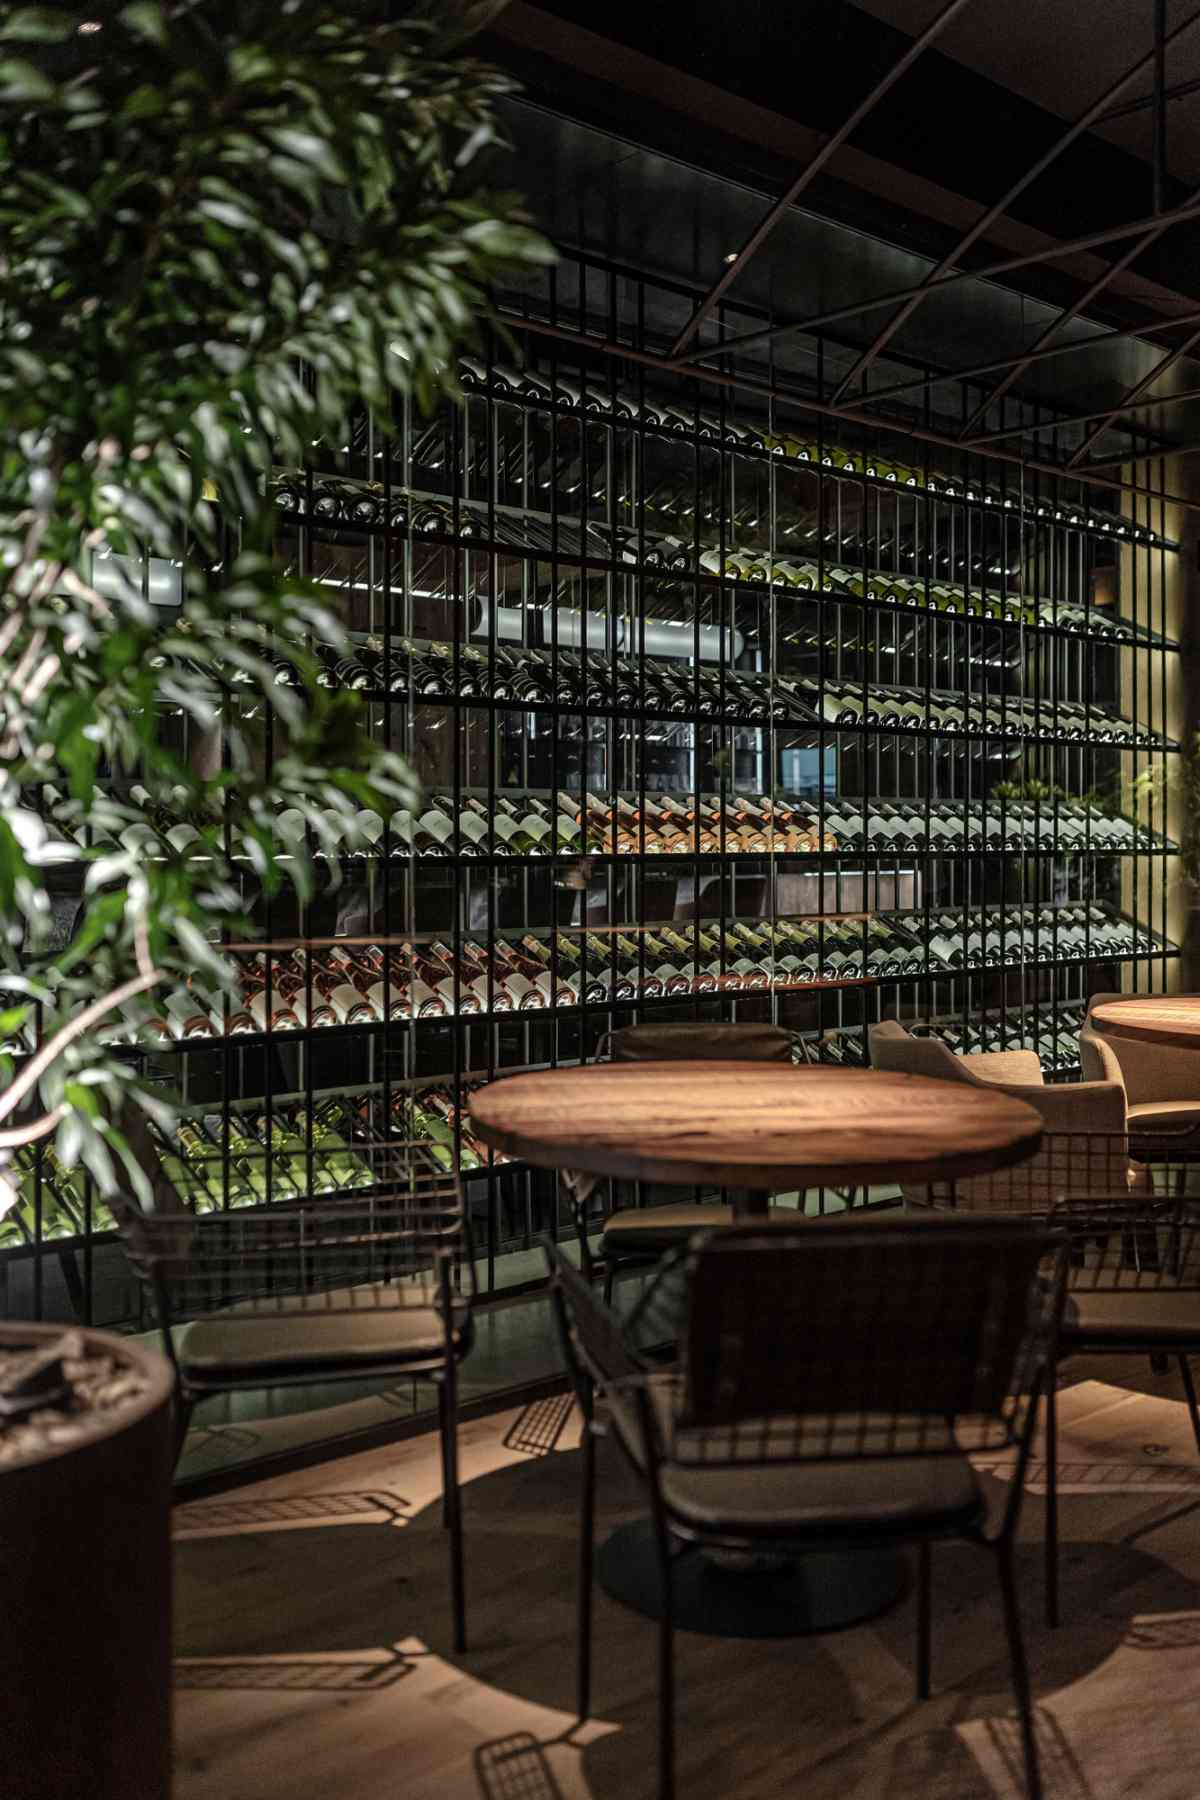 The main area and the terrace are separated by this large wine cabinet